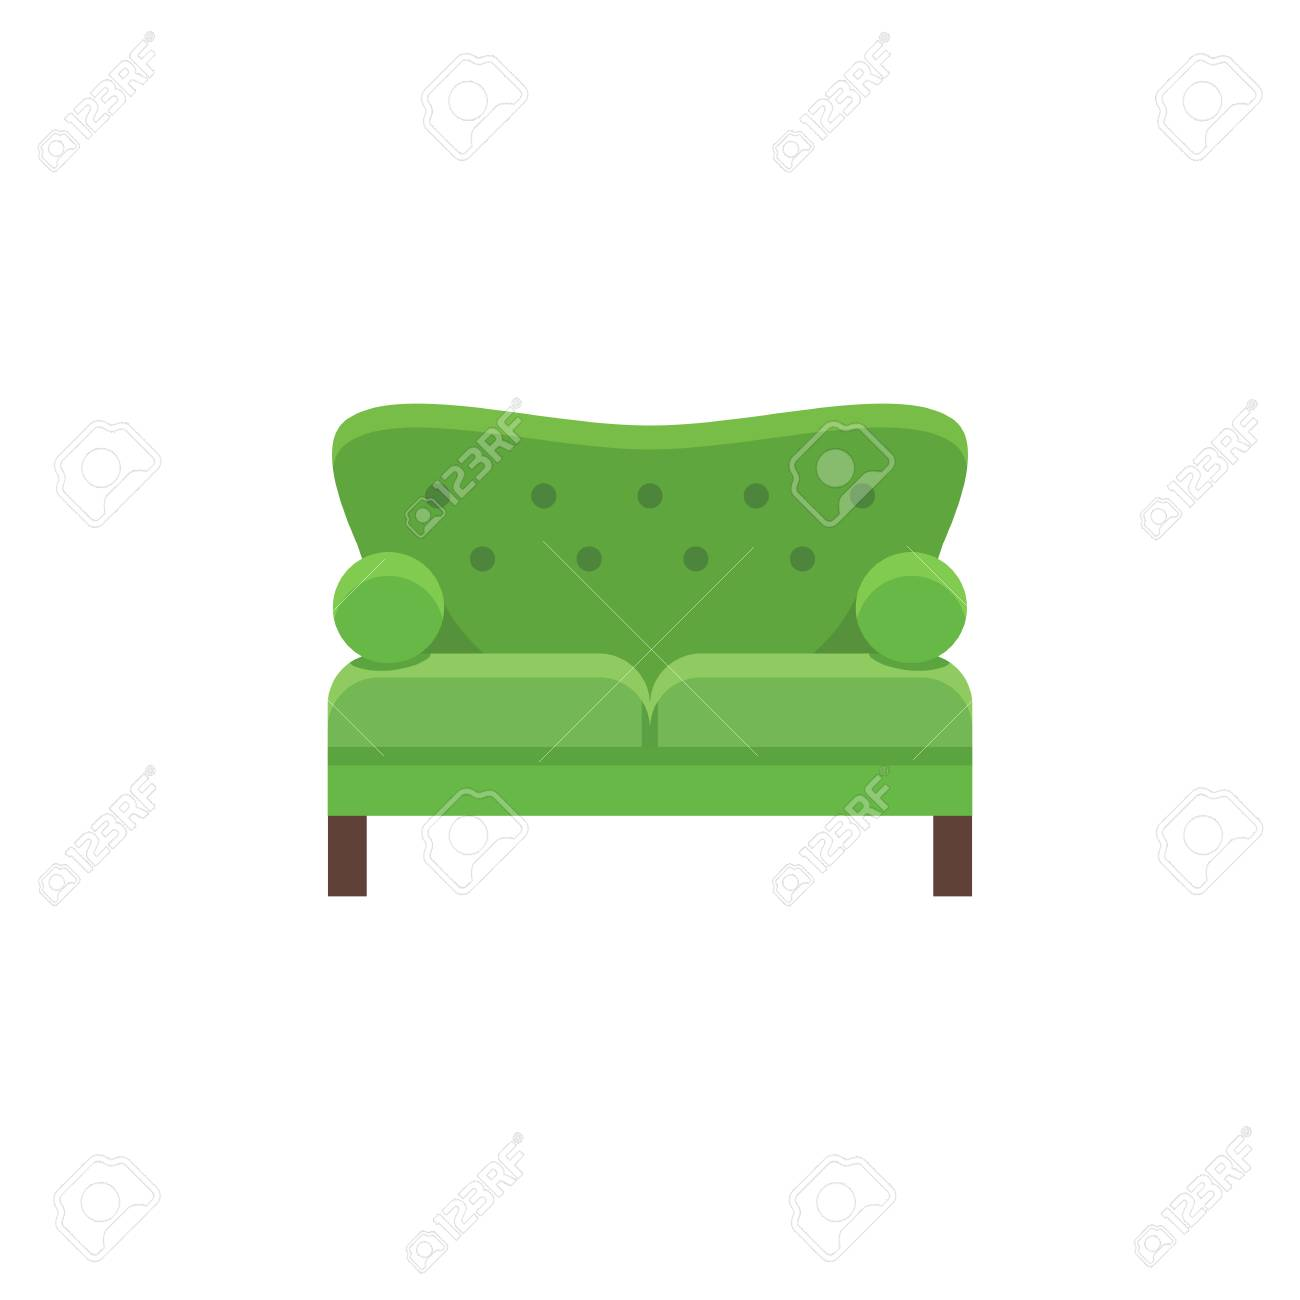 Green Loveseat Double Sofa Vector Illustration Flat Icon Of